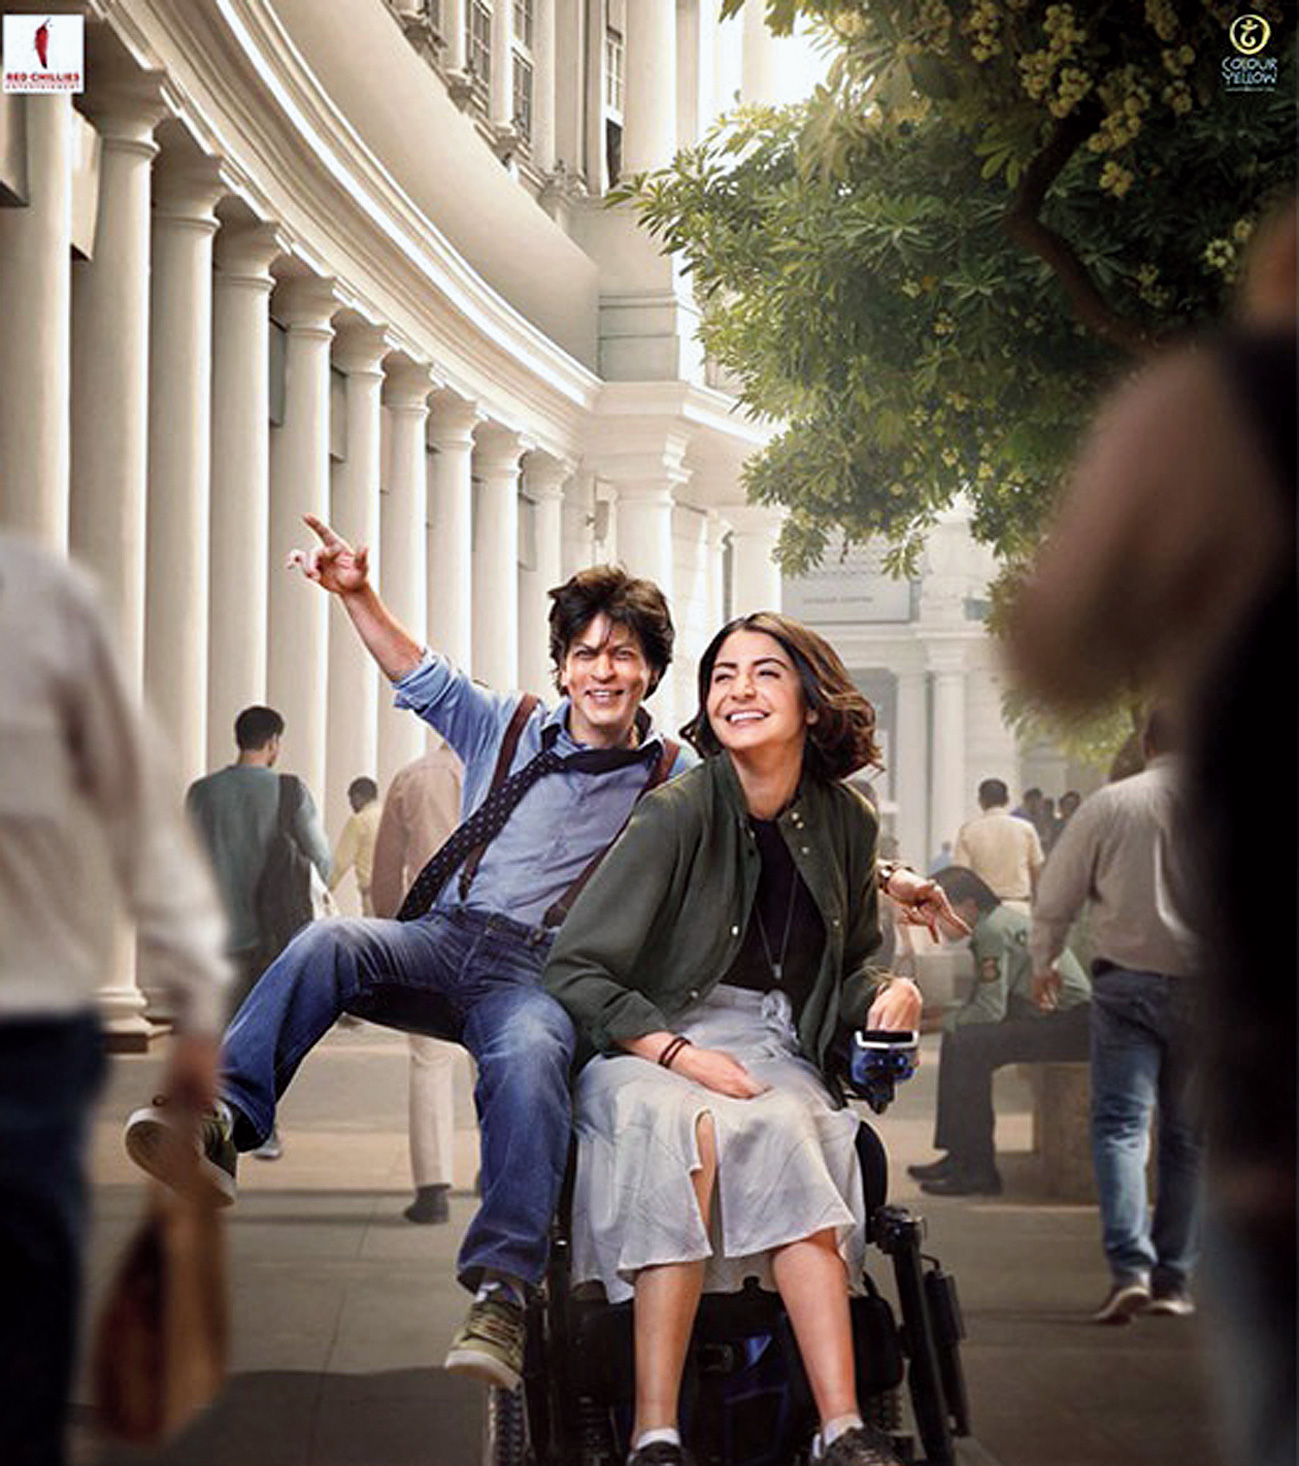 Shah Rukh Khan and Anushka Sharma in Zero, which releases today